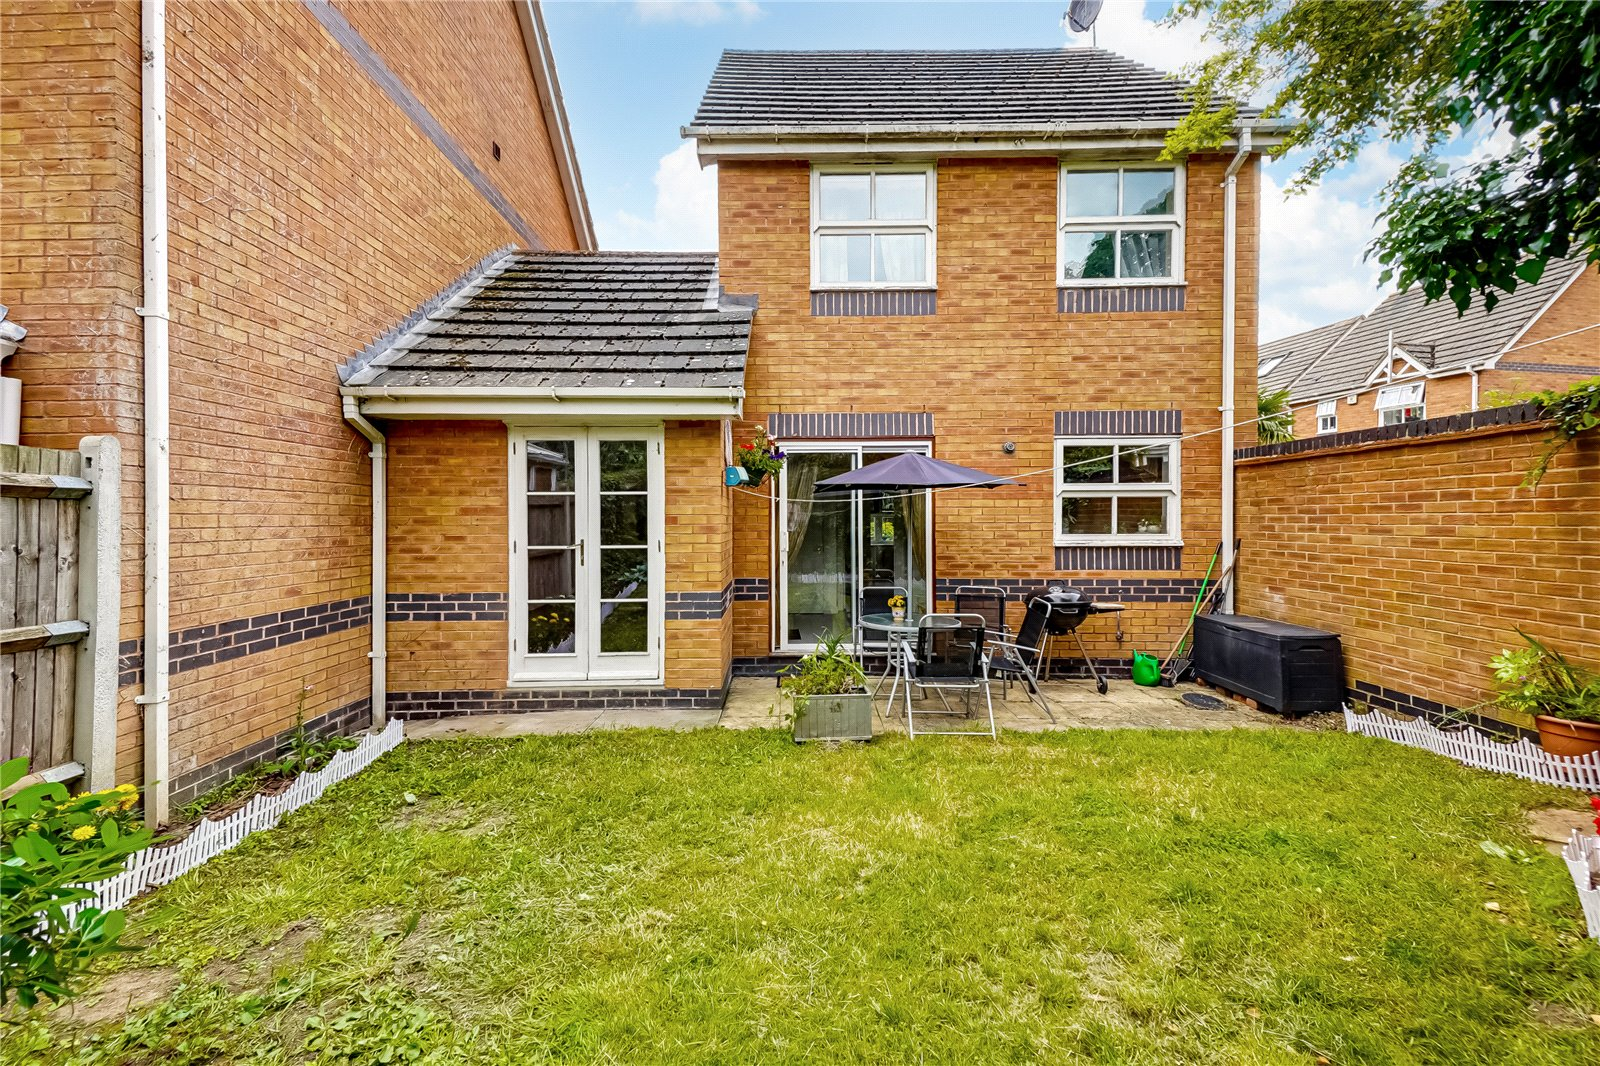 3 bed house for sale in The Mallows, Maidstone 3